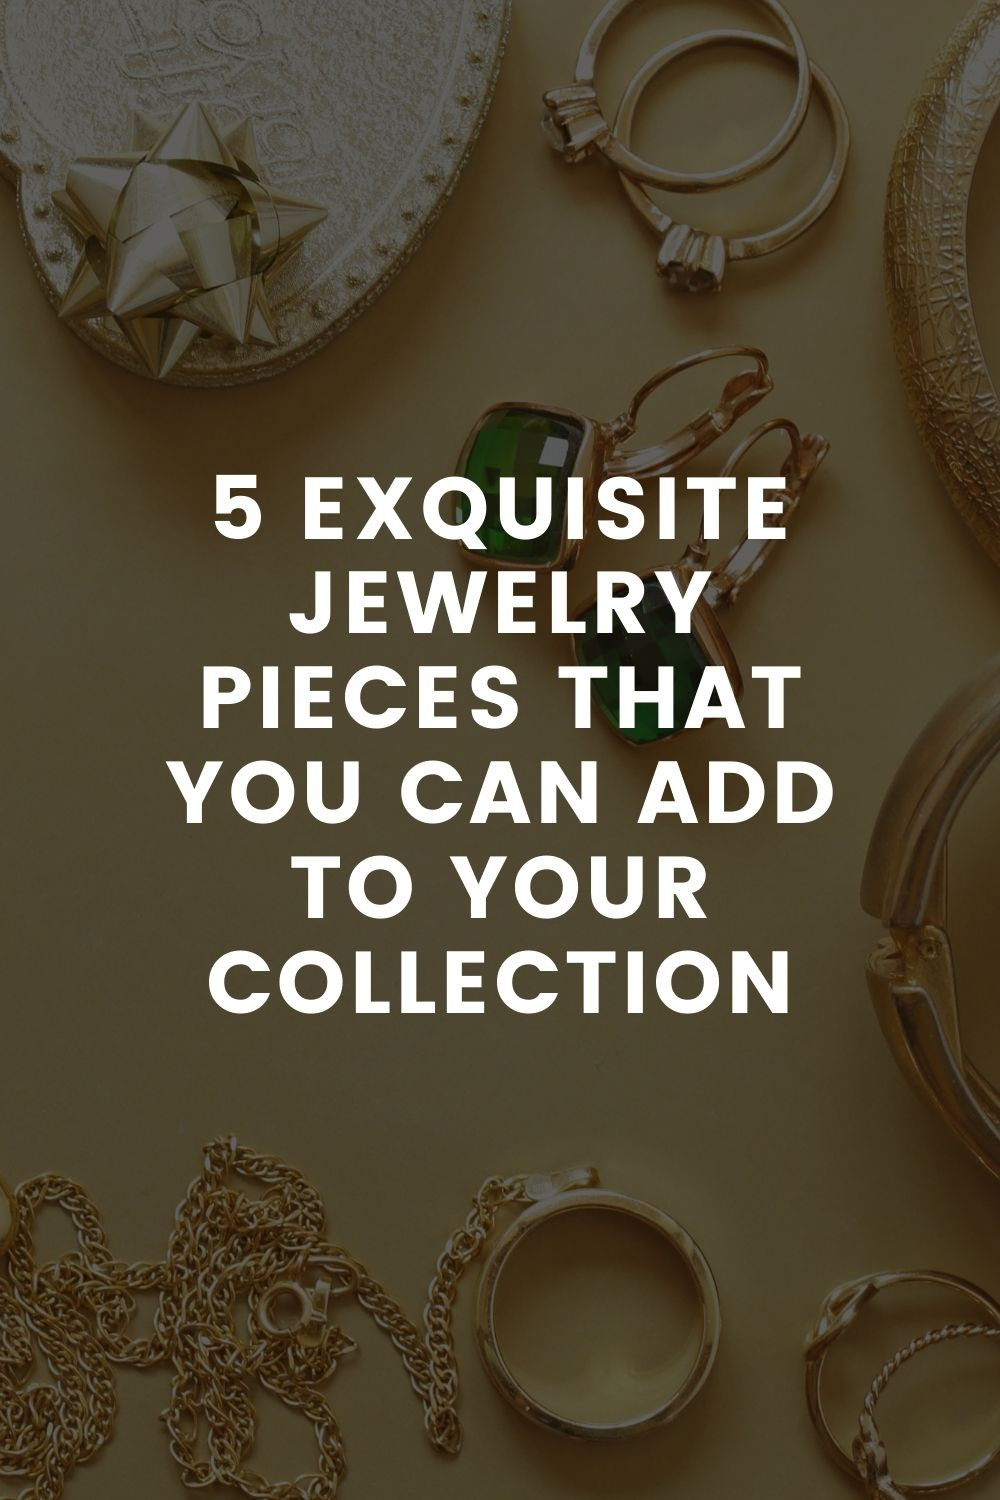 5 Exquisite Jewelry Pieces That You Can Add To Your Collection